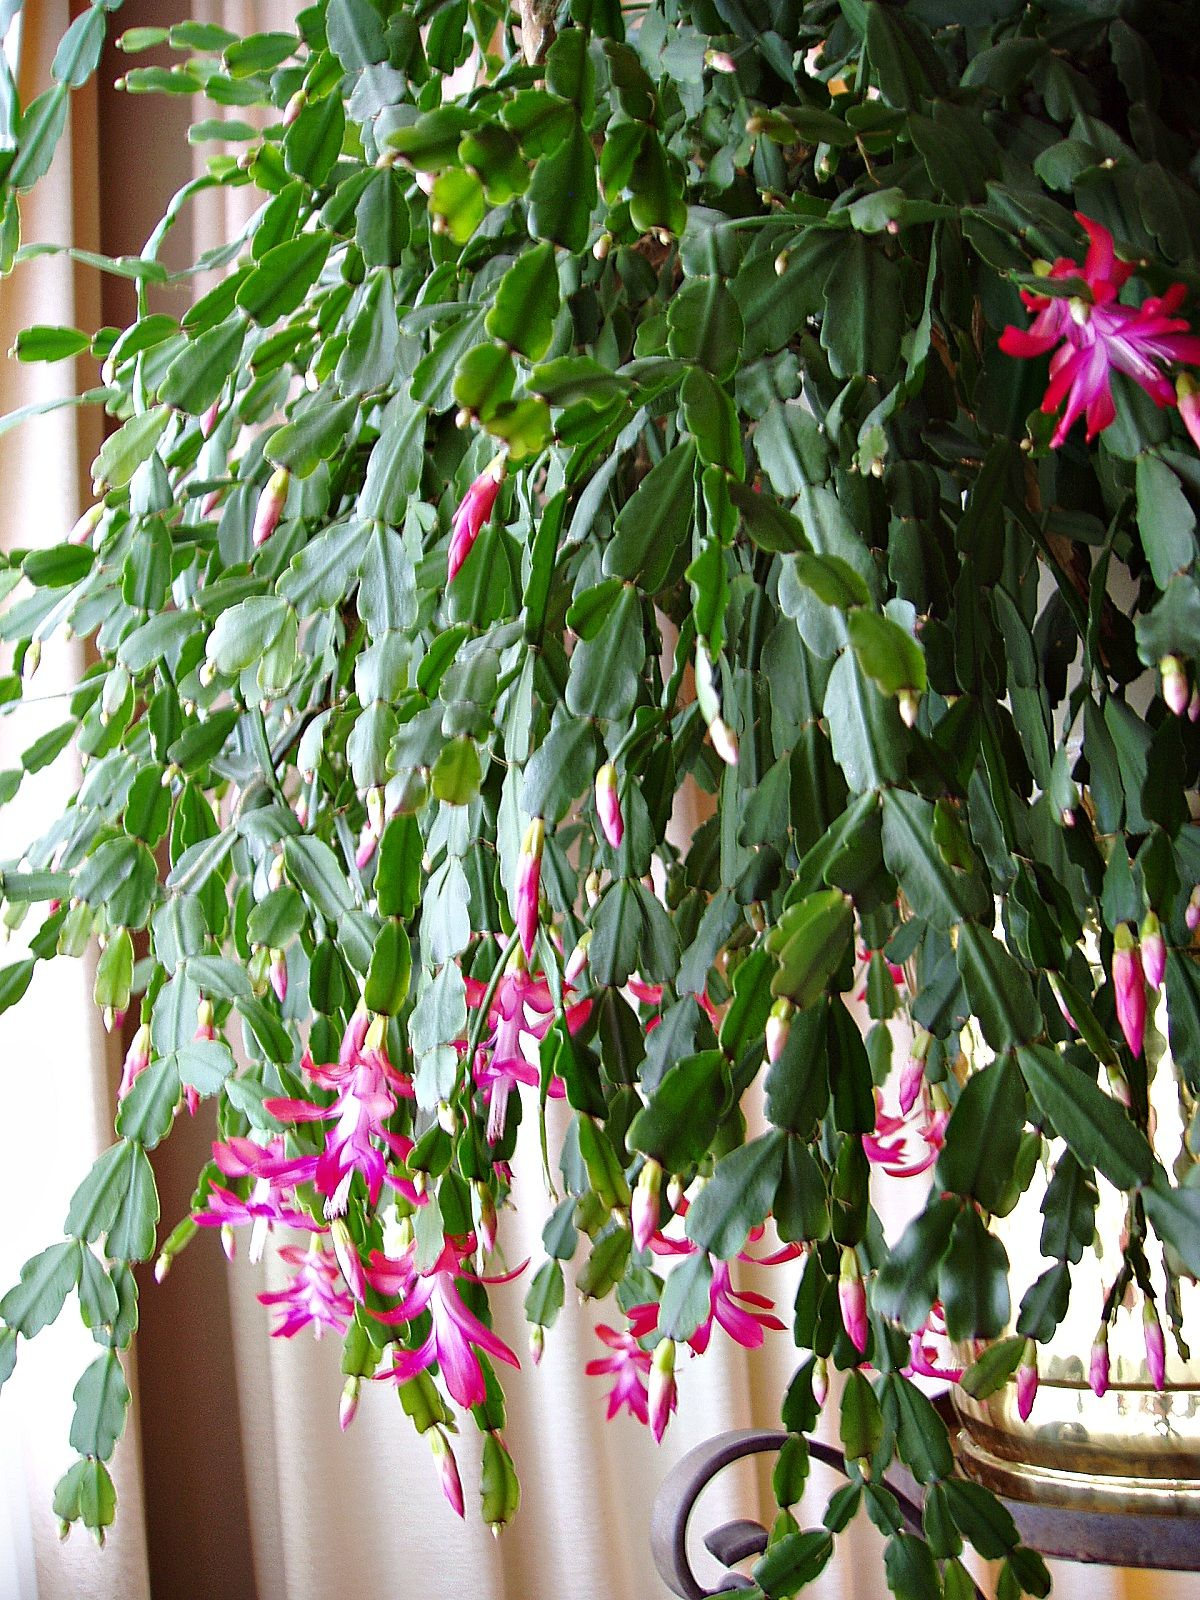 Christmas Cactus.Christmas Cactus Butterflies Aquatic Plants And Indoor